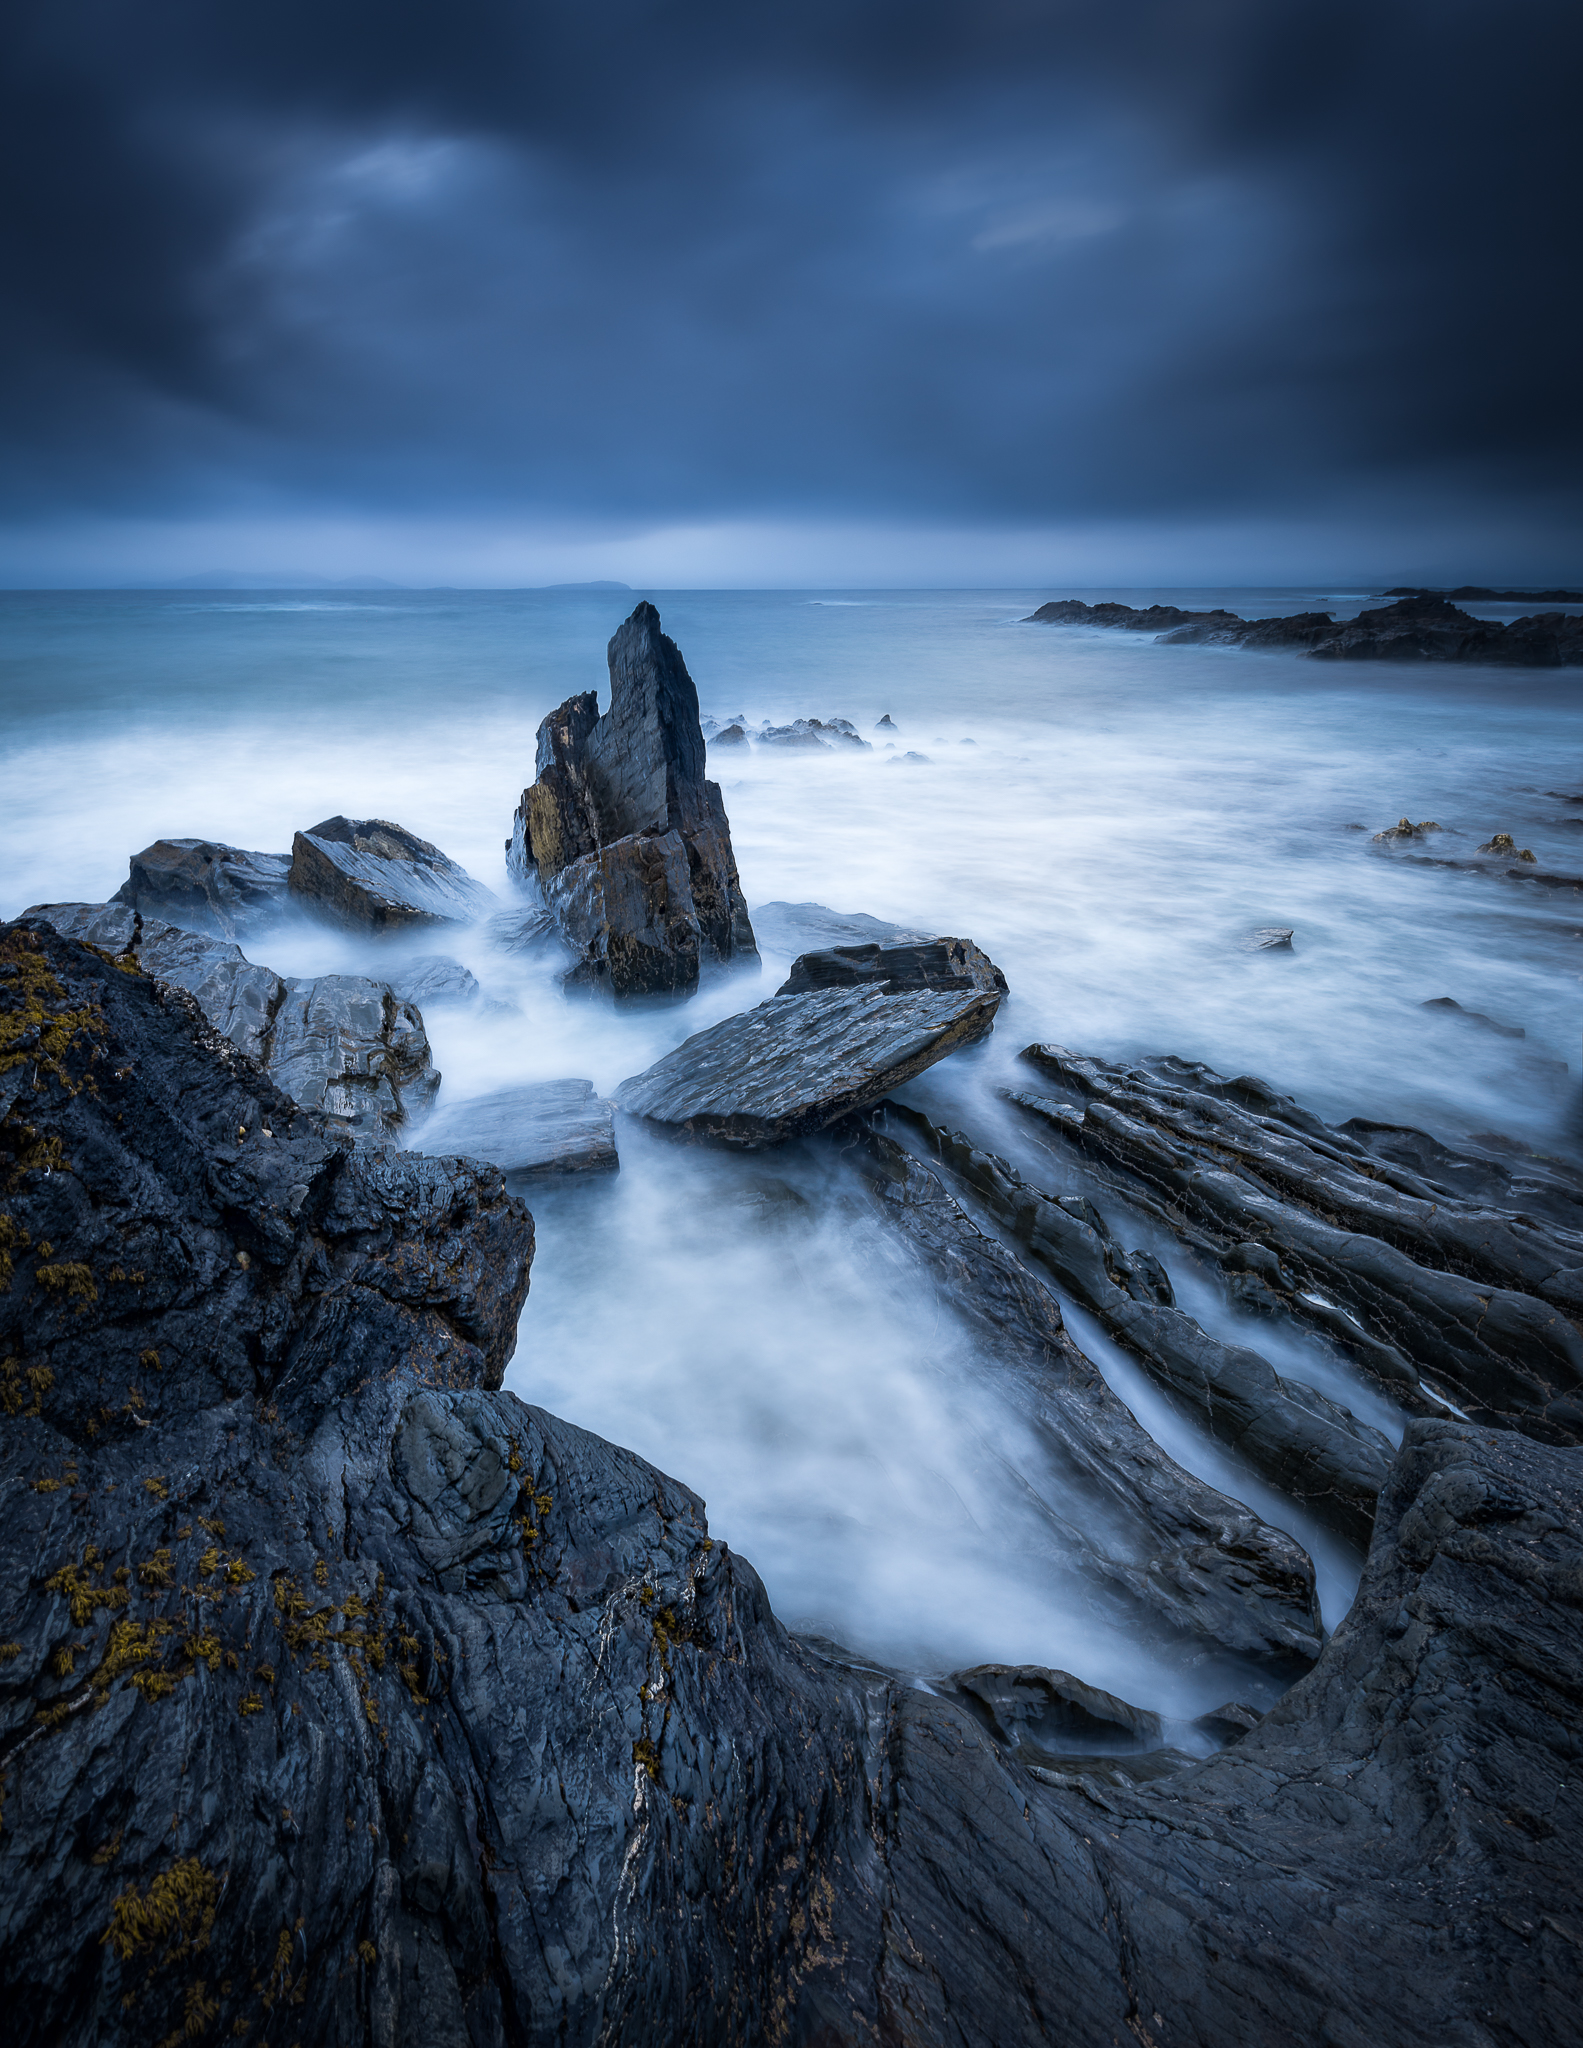 landscape photography workshop ireland mayo wild atlantic way